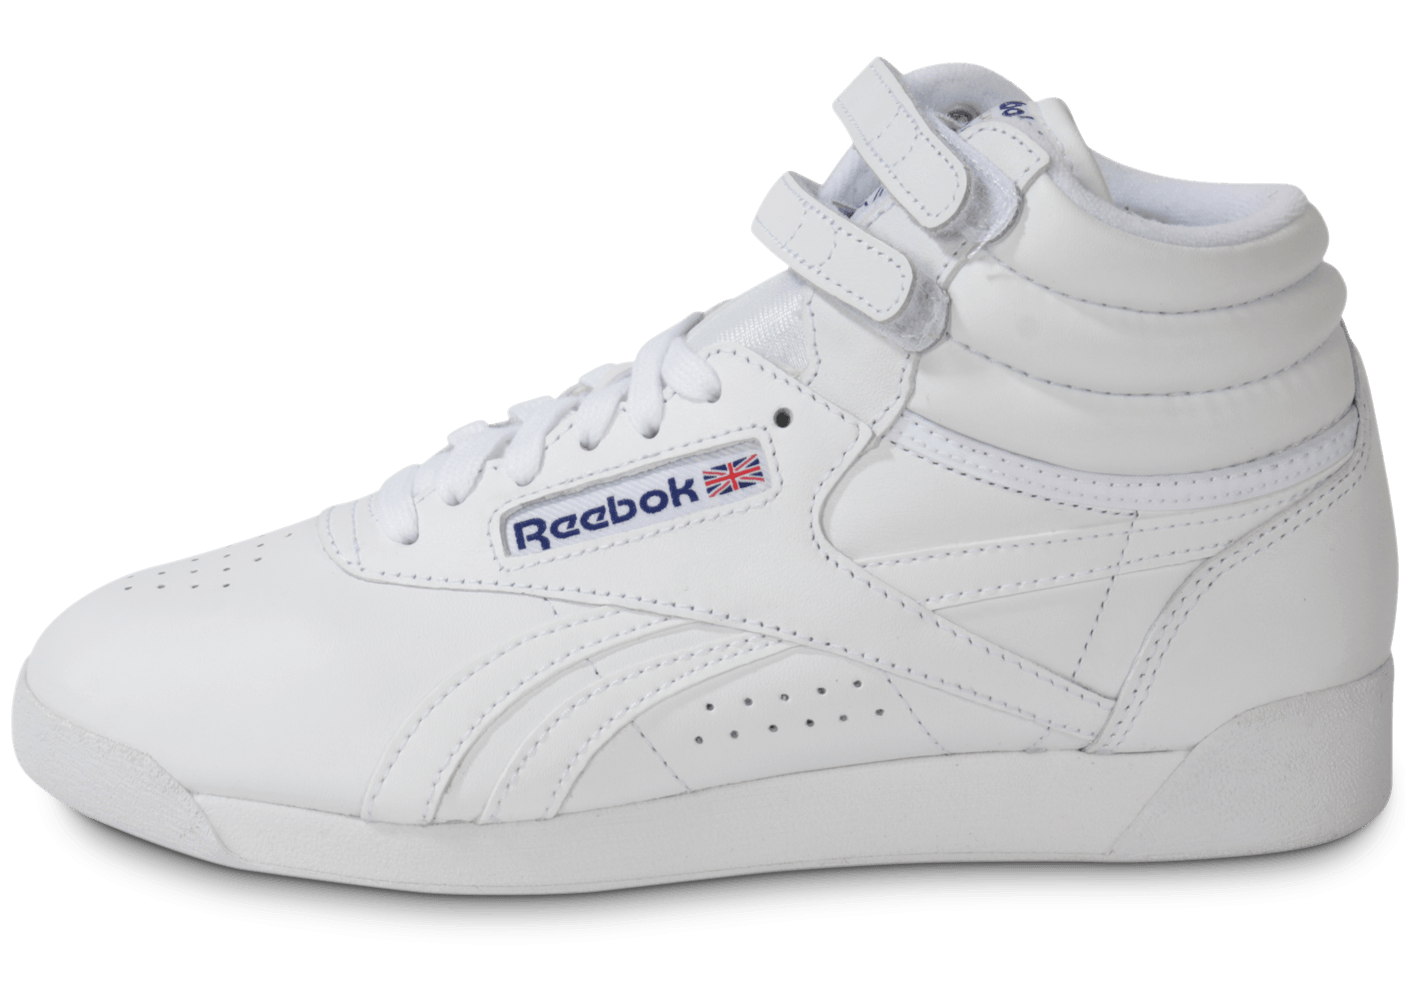 chaussures freestyle reebok reebok homme chaussures HeDYb2WE9I